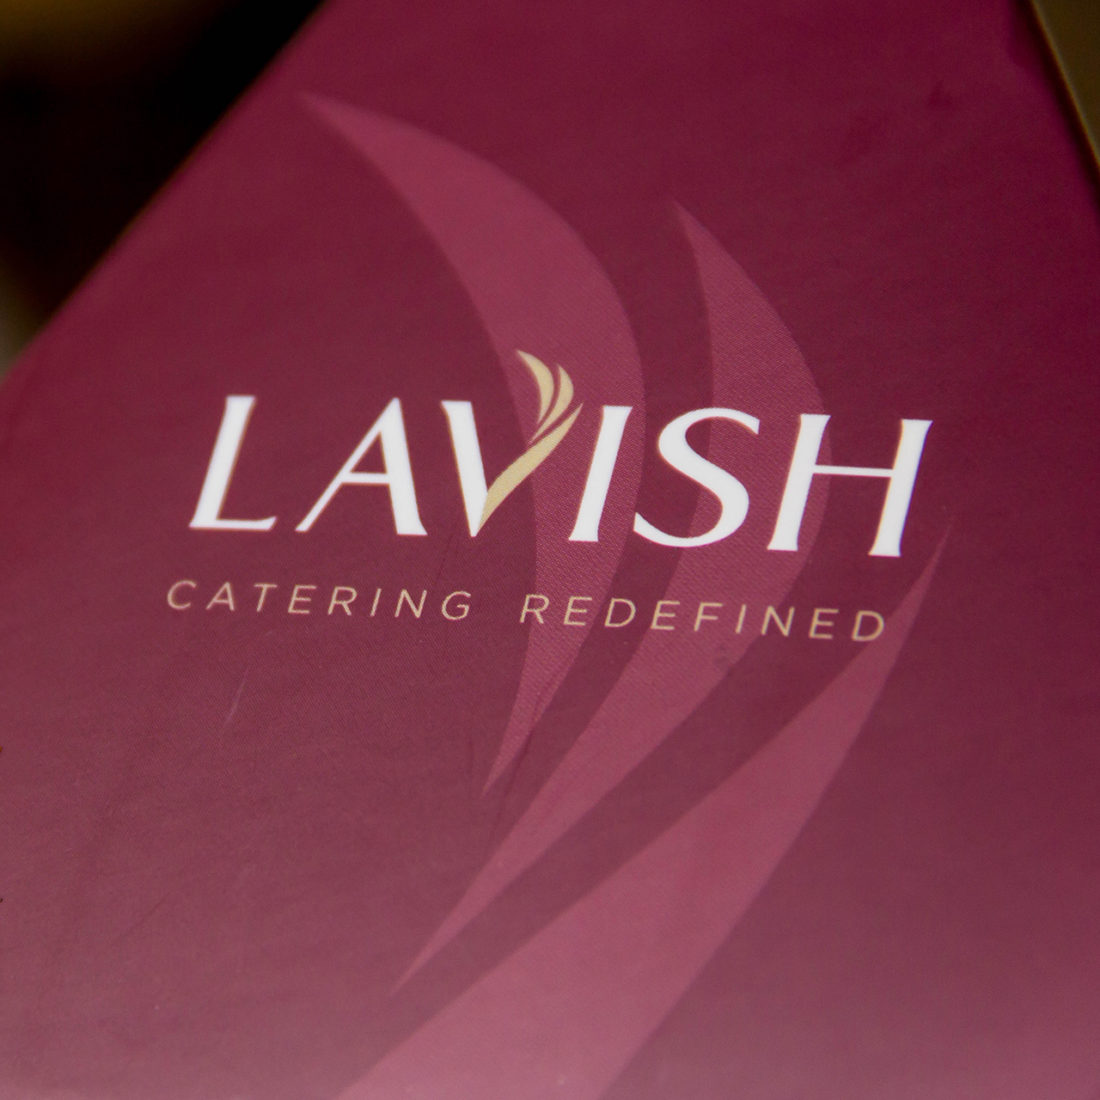 Lavish brand strategy